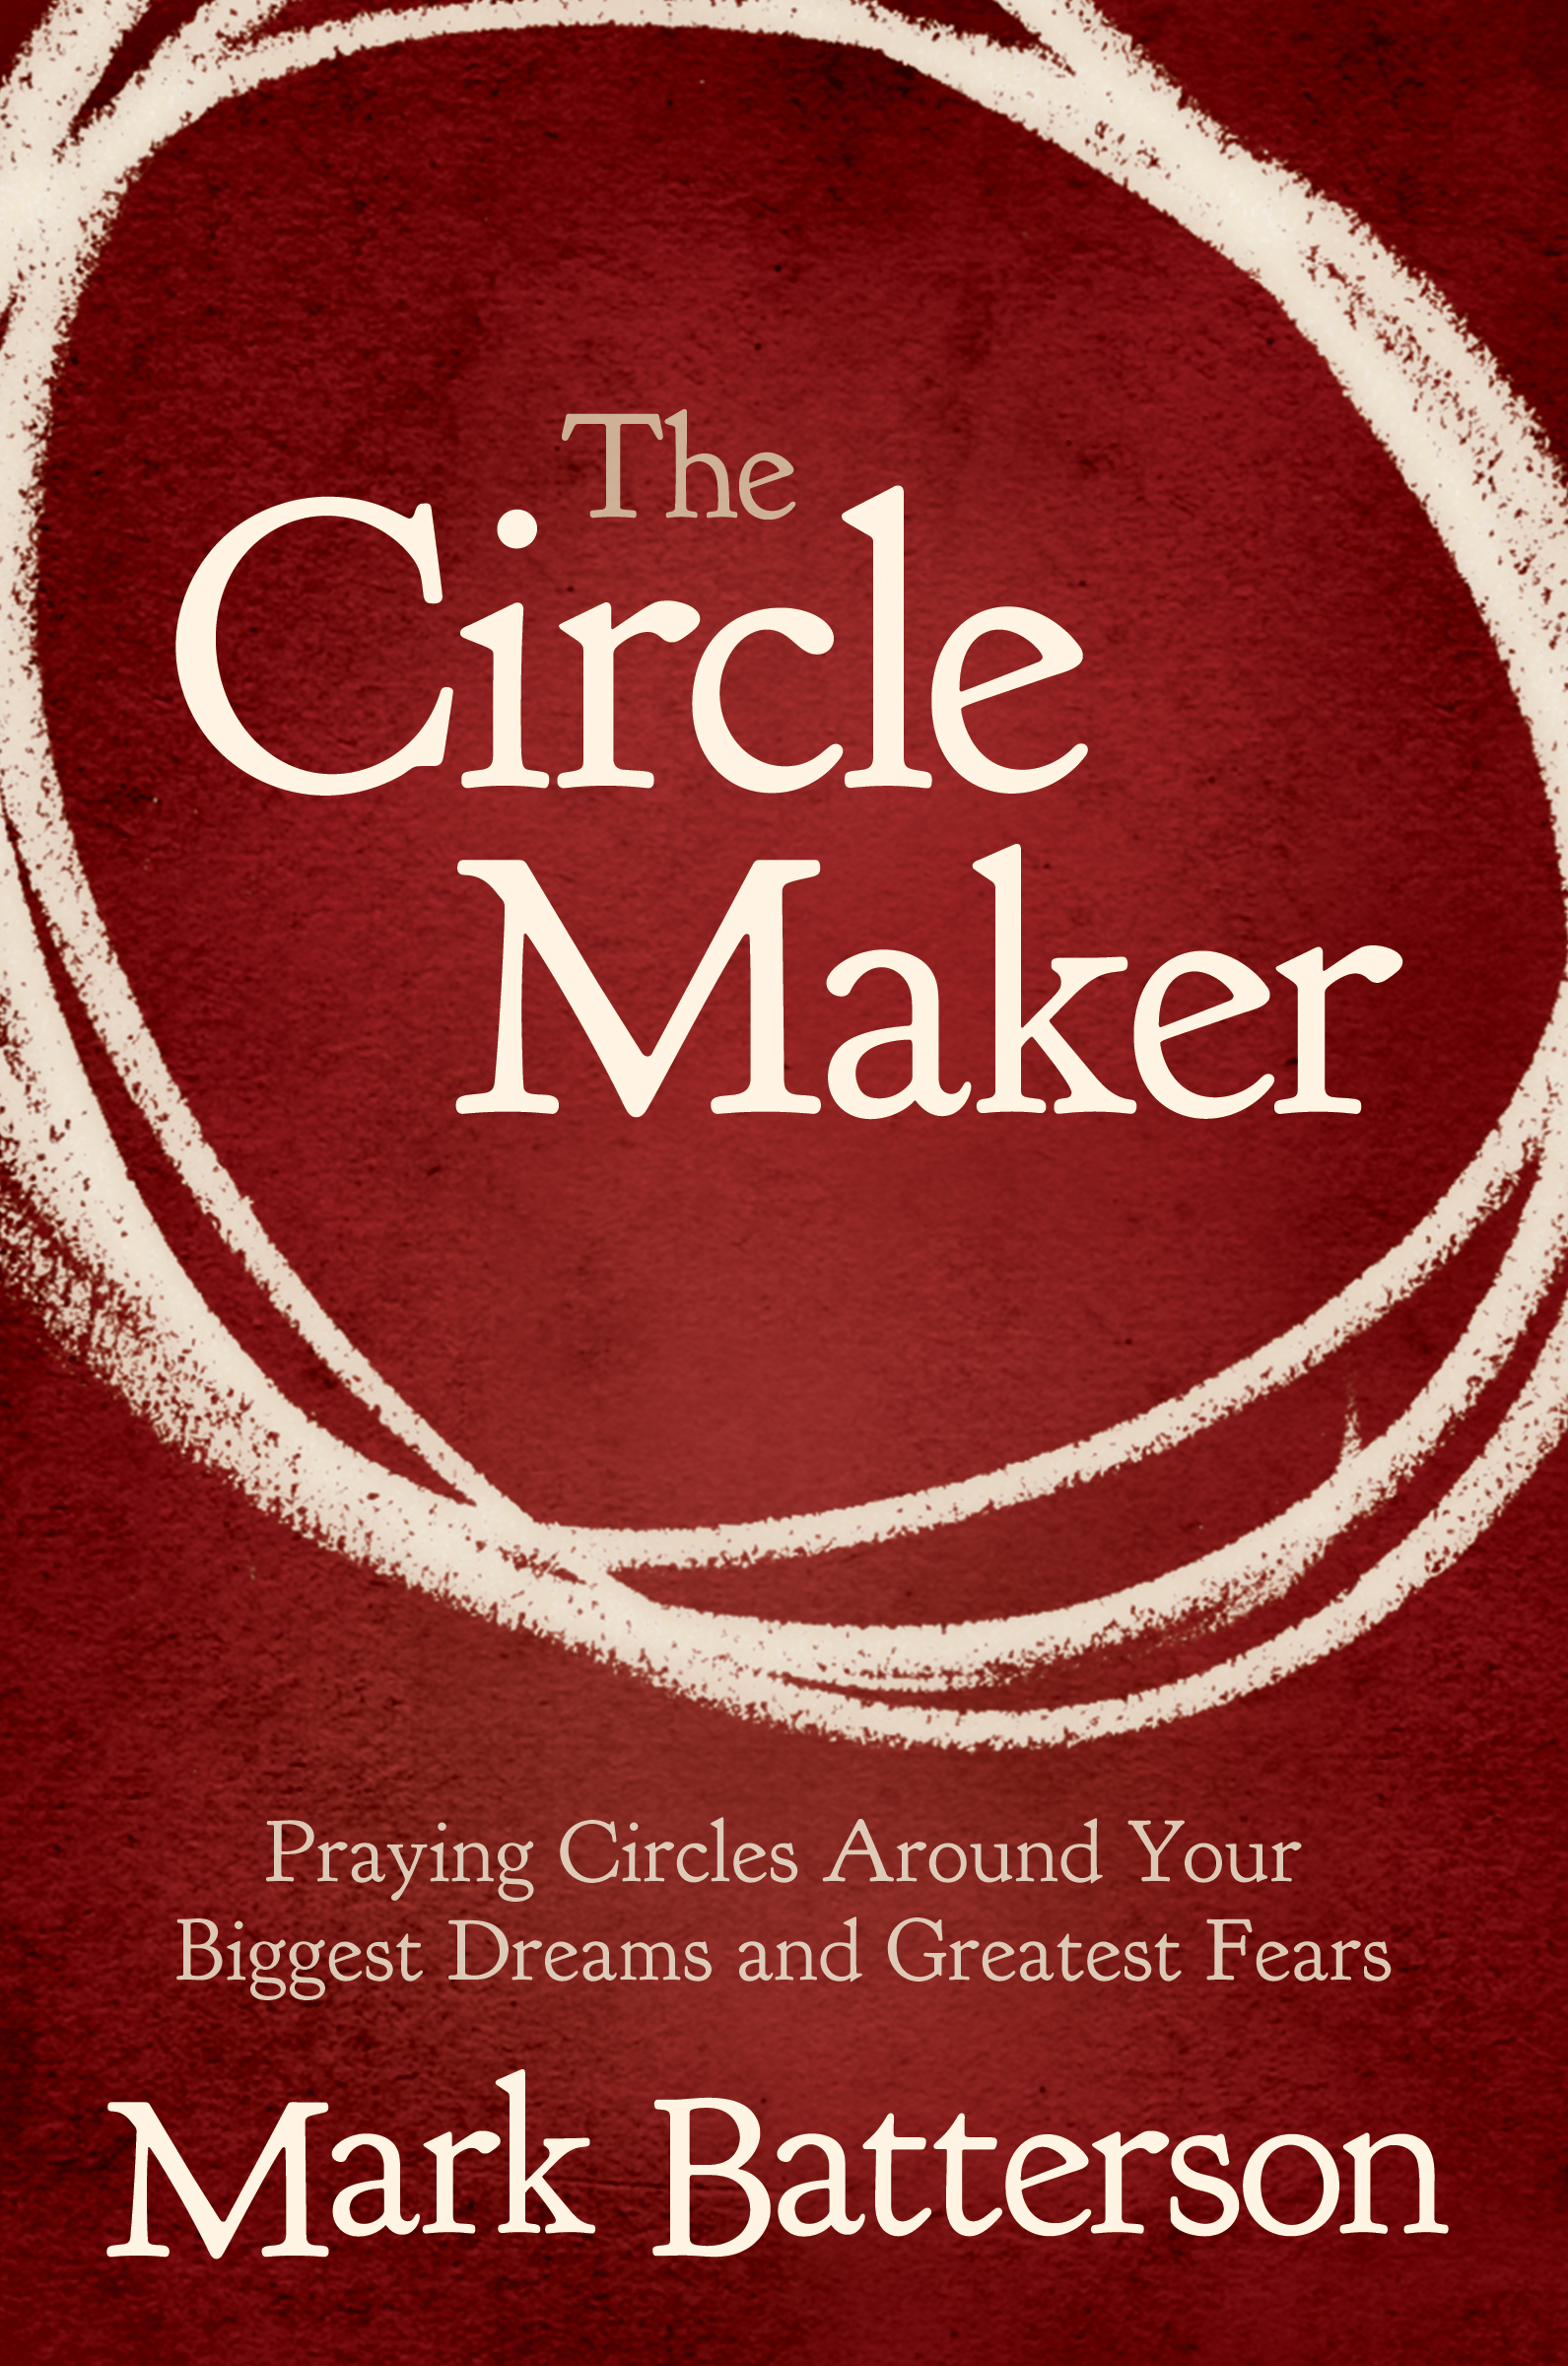 Free Resources - The Circle Maker